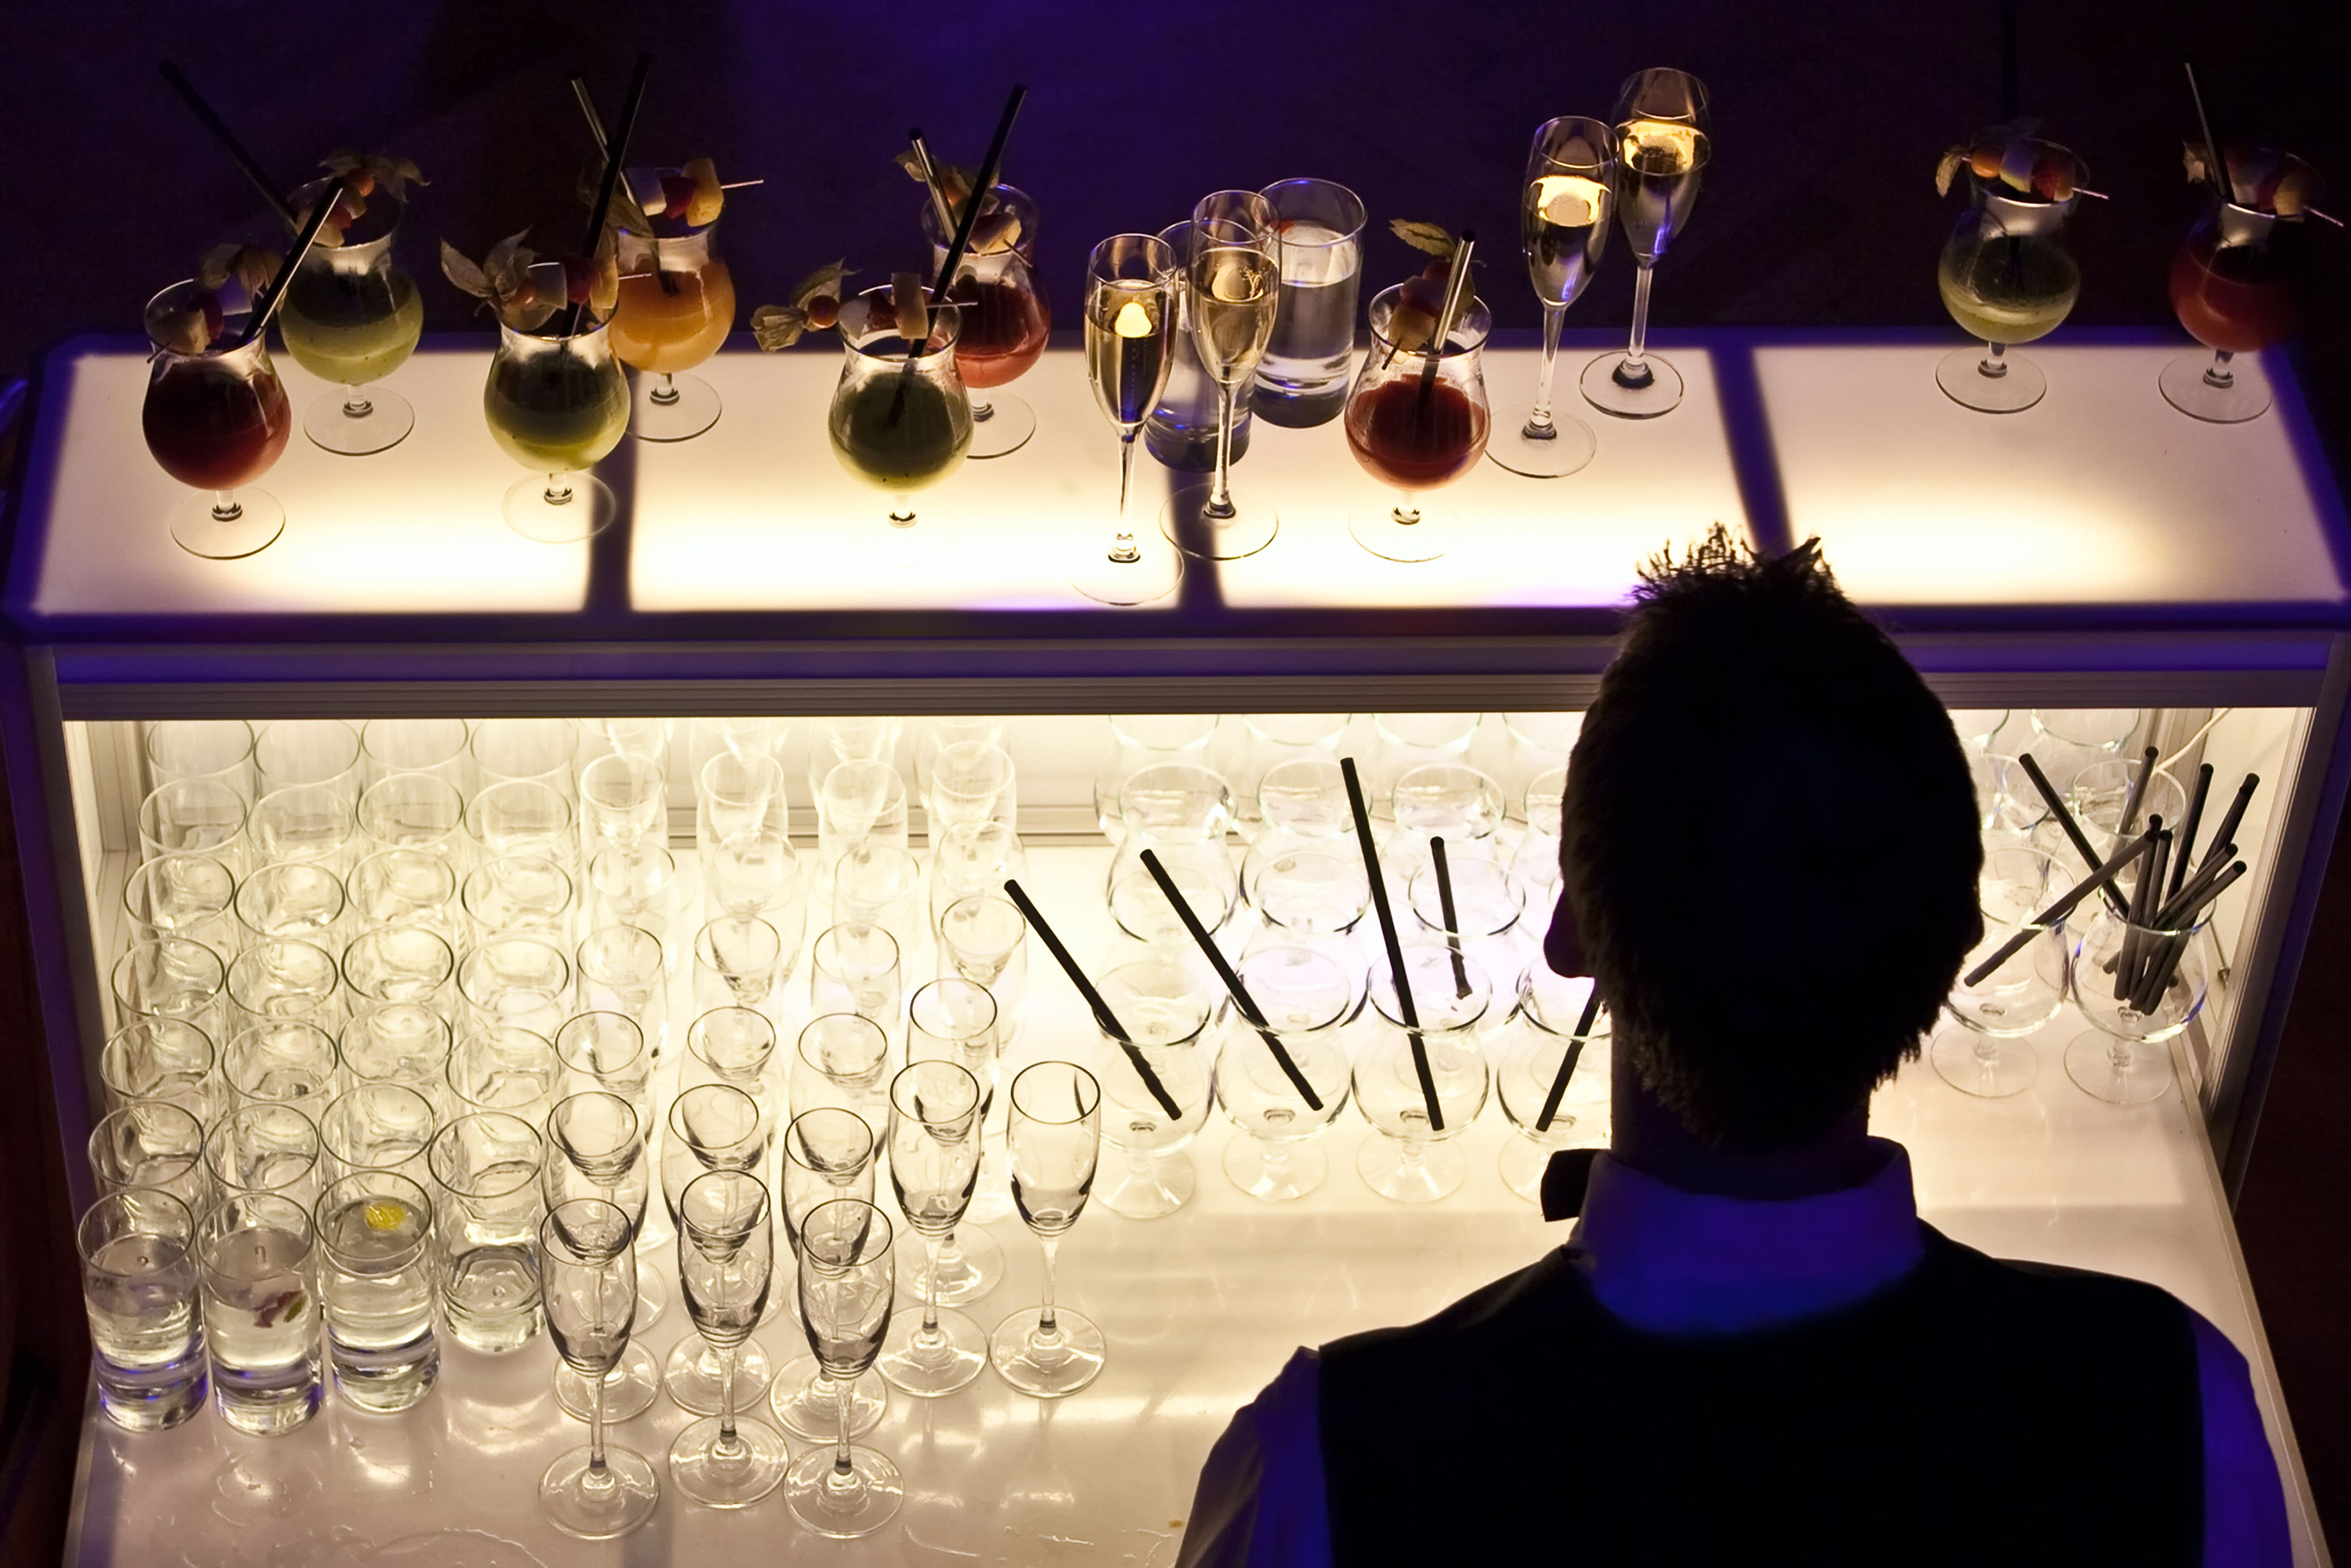 Serving so many kinds of drinks requires a working vocabulary to discuss bar products